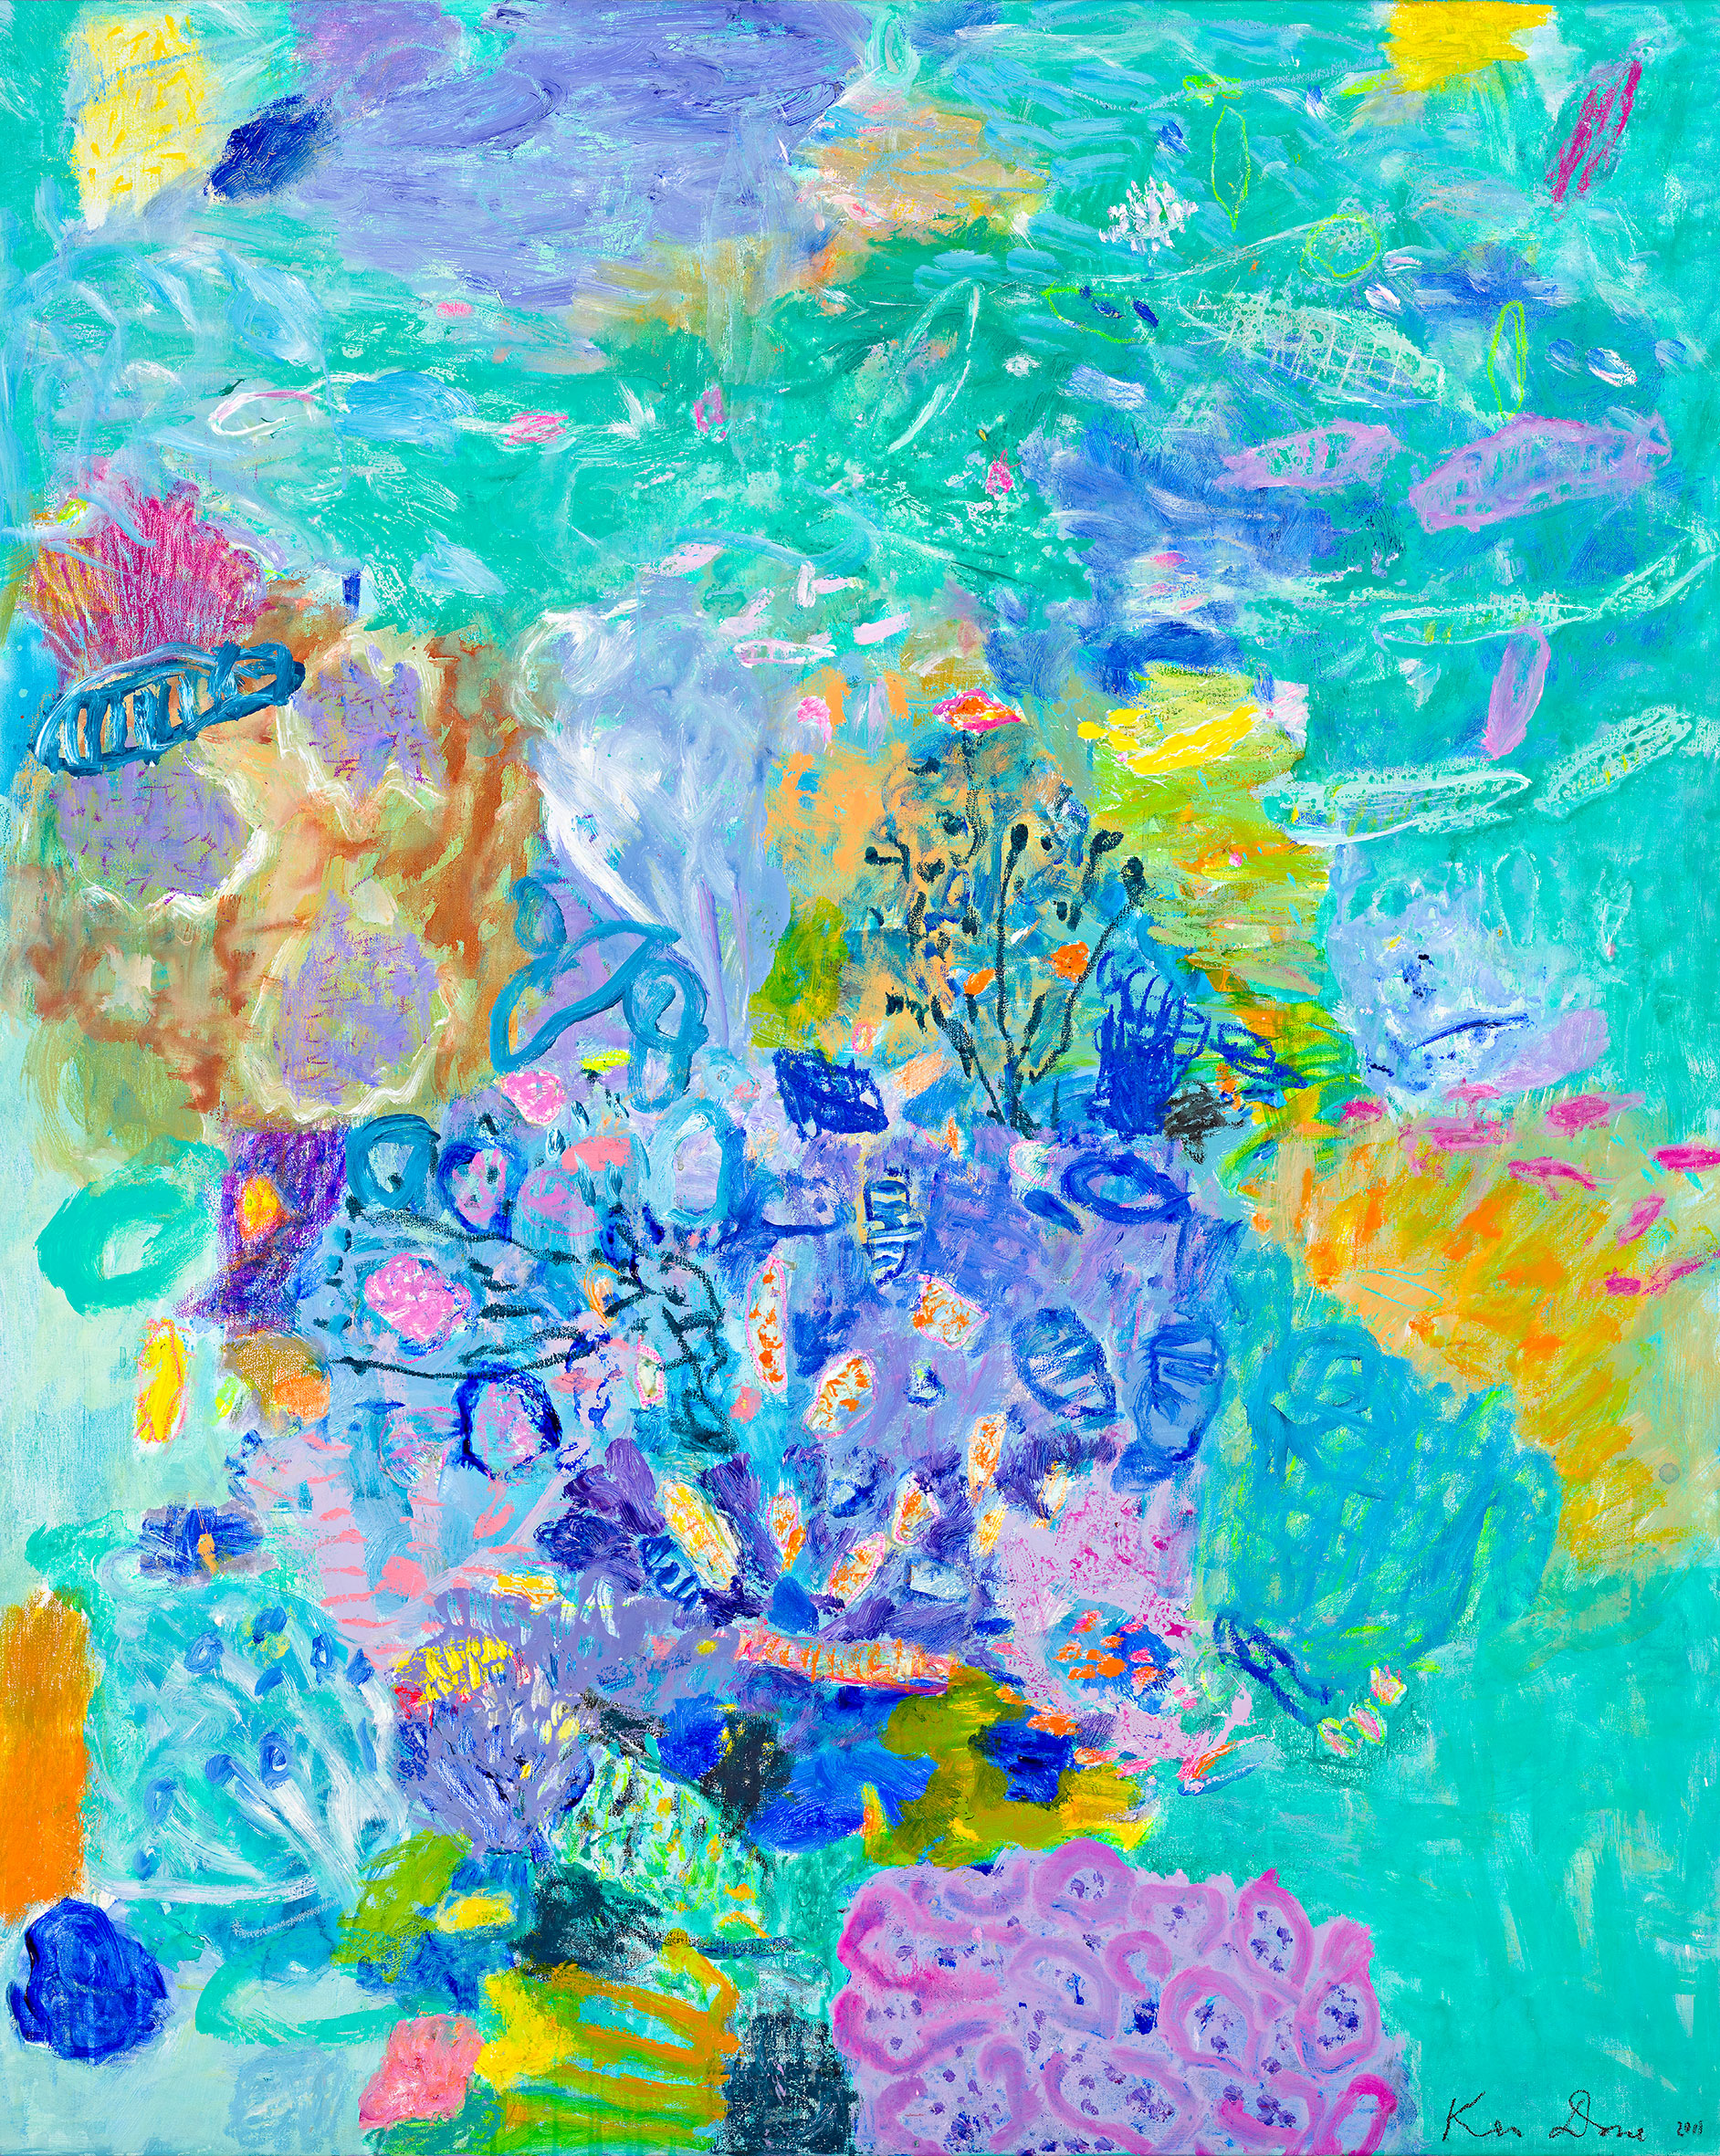 Turquoise coral head I, 2011, oil, oil crayon and acrylic on linen, 152 x 122cm